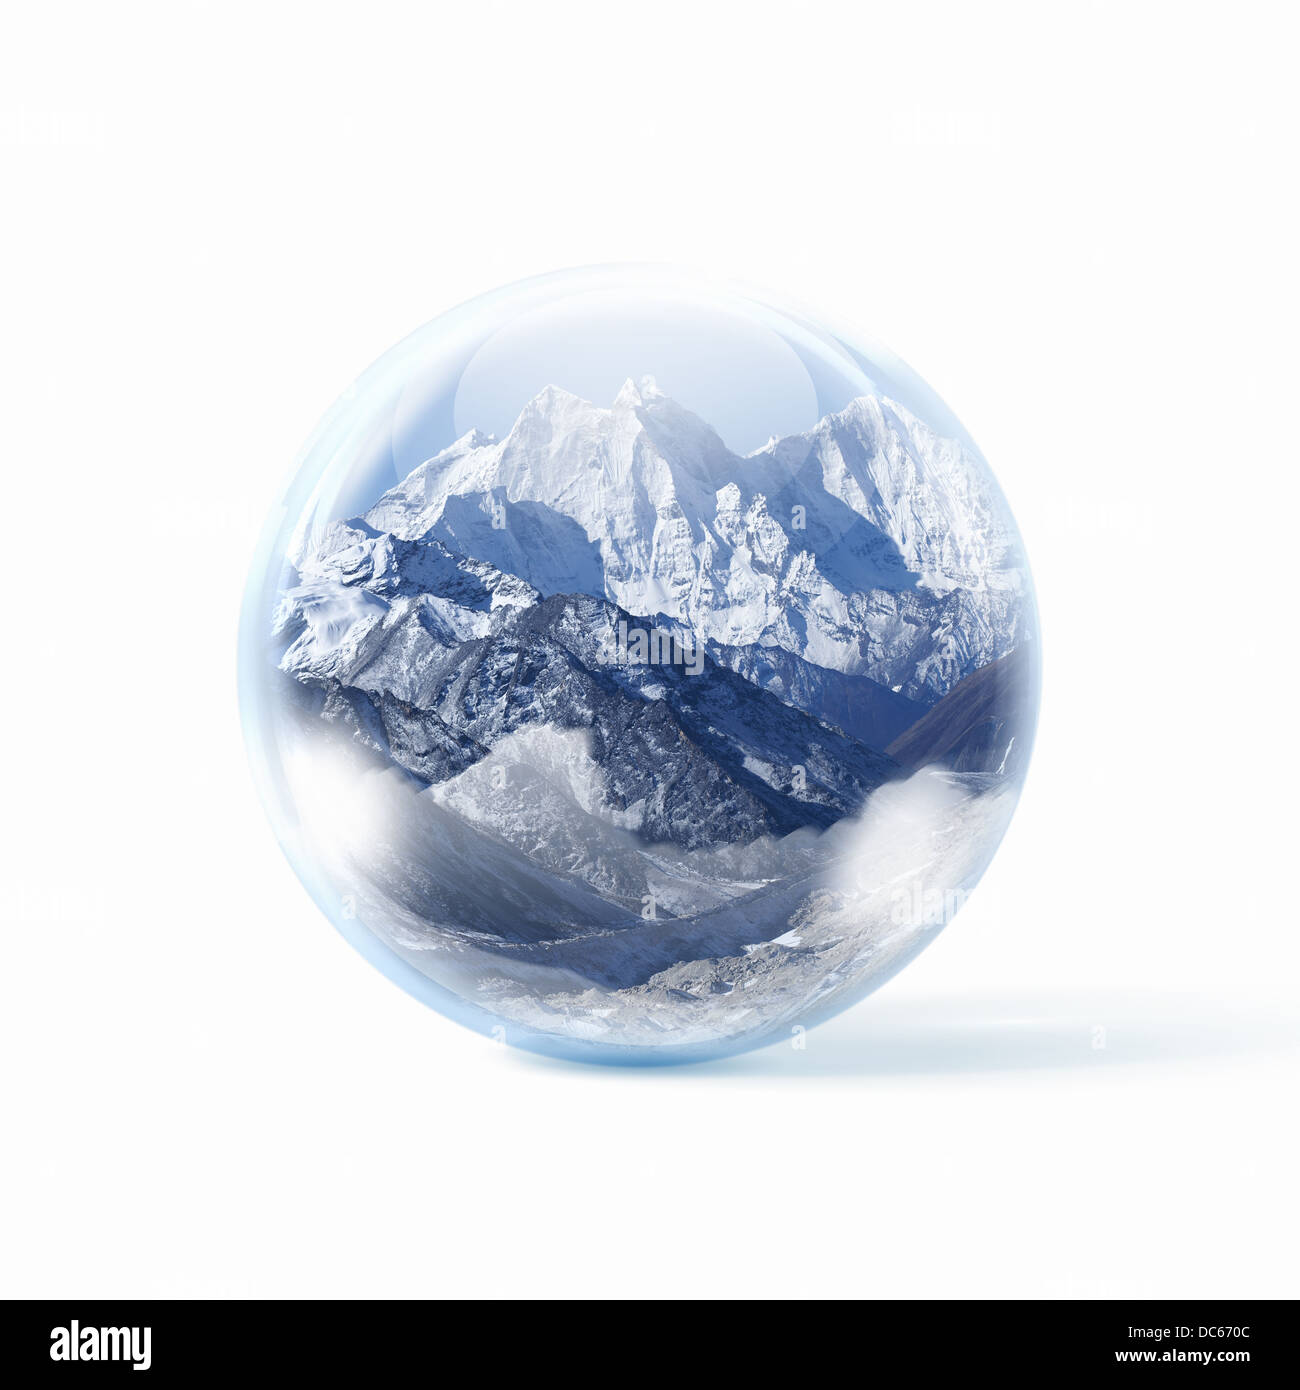 Snow mountains inside a glass ball - Stock Image